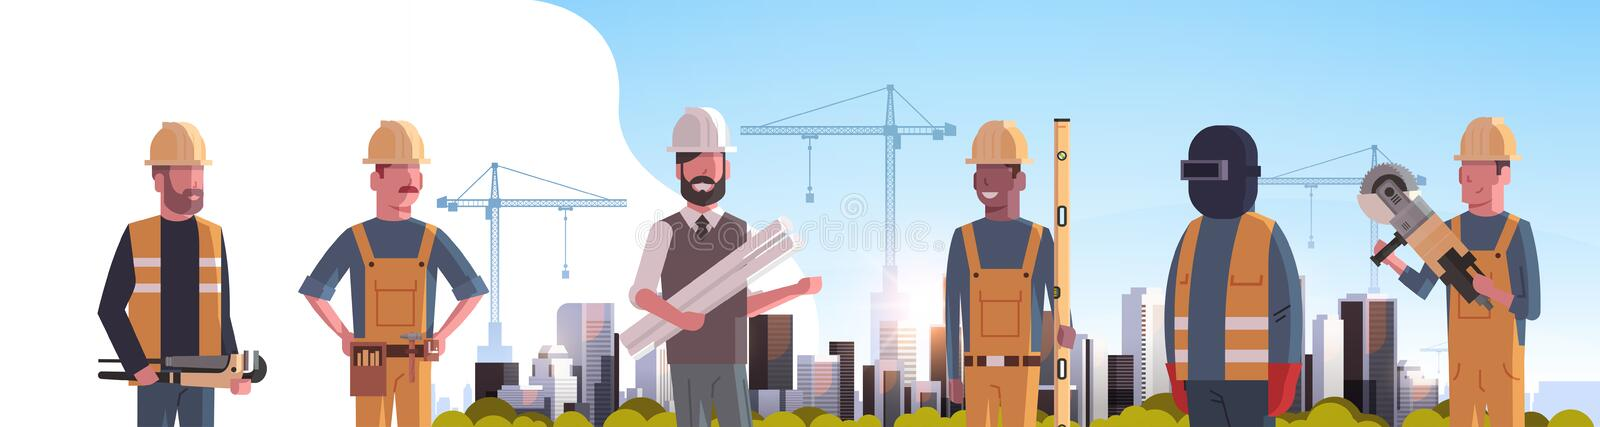 Construction workers team industrial technicians builders group over city construction site tower cranes building stock illustration